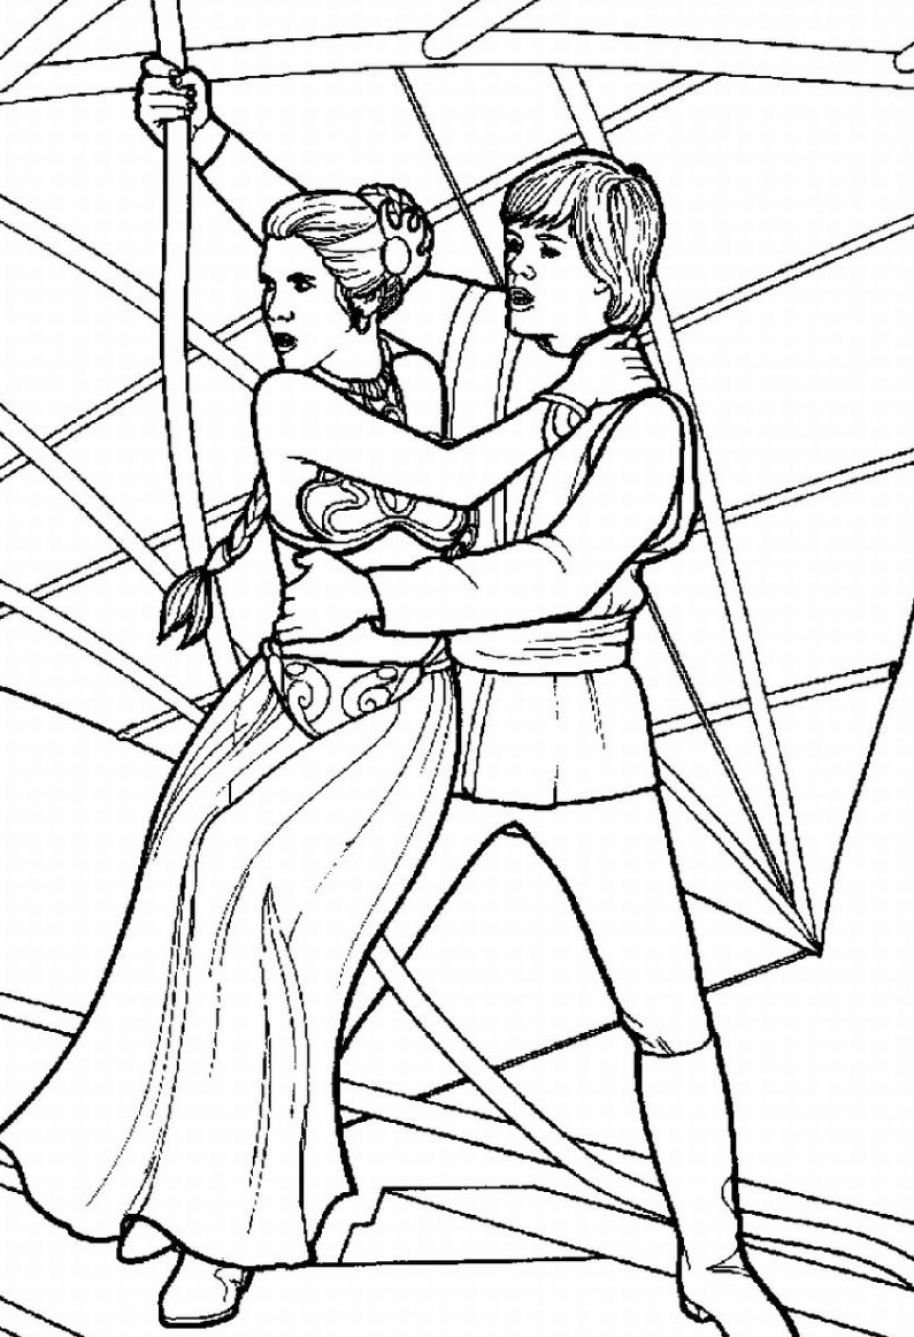 remarkable Star Wars Coloring Pages : coloringkids.org